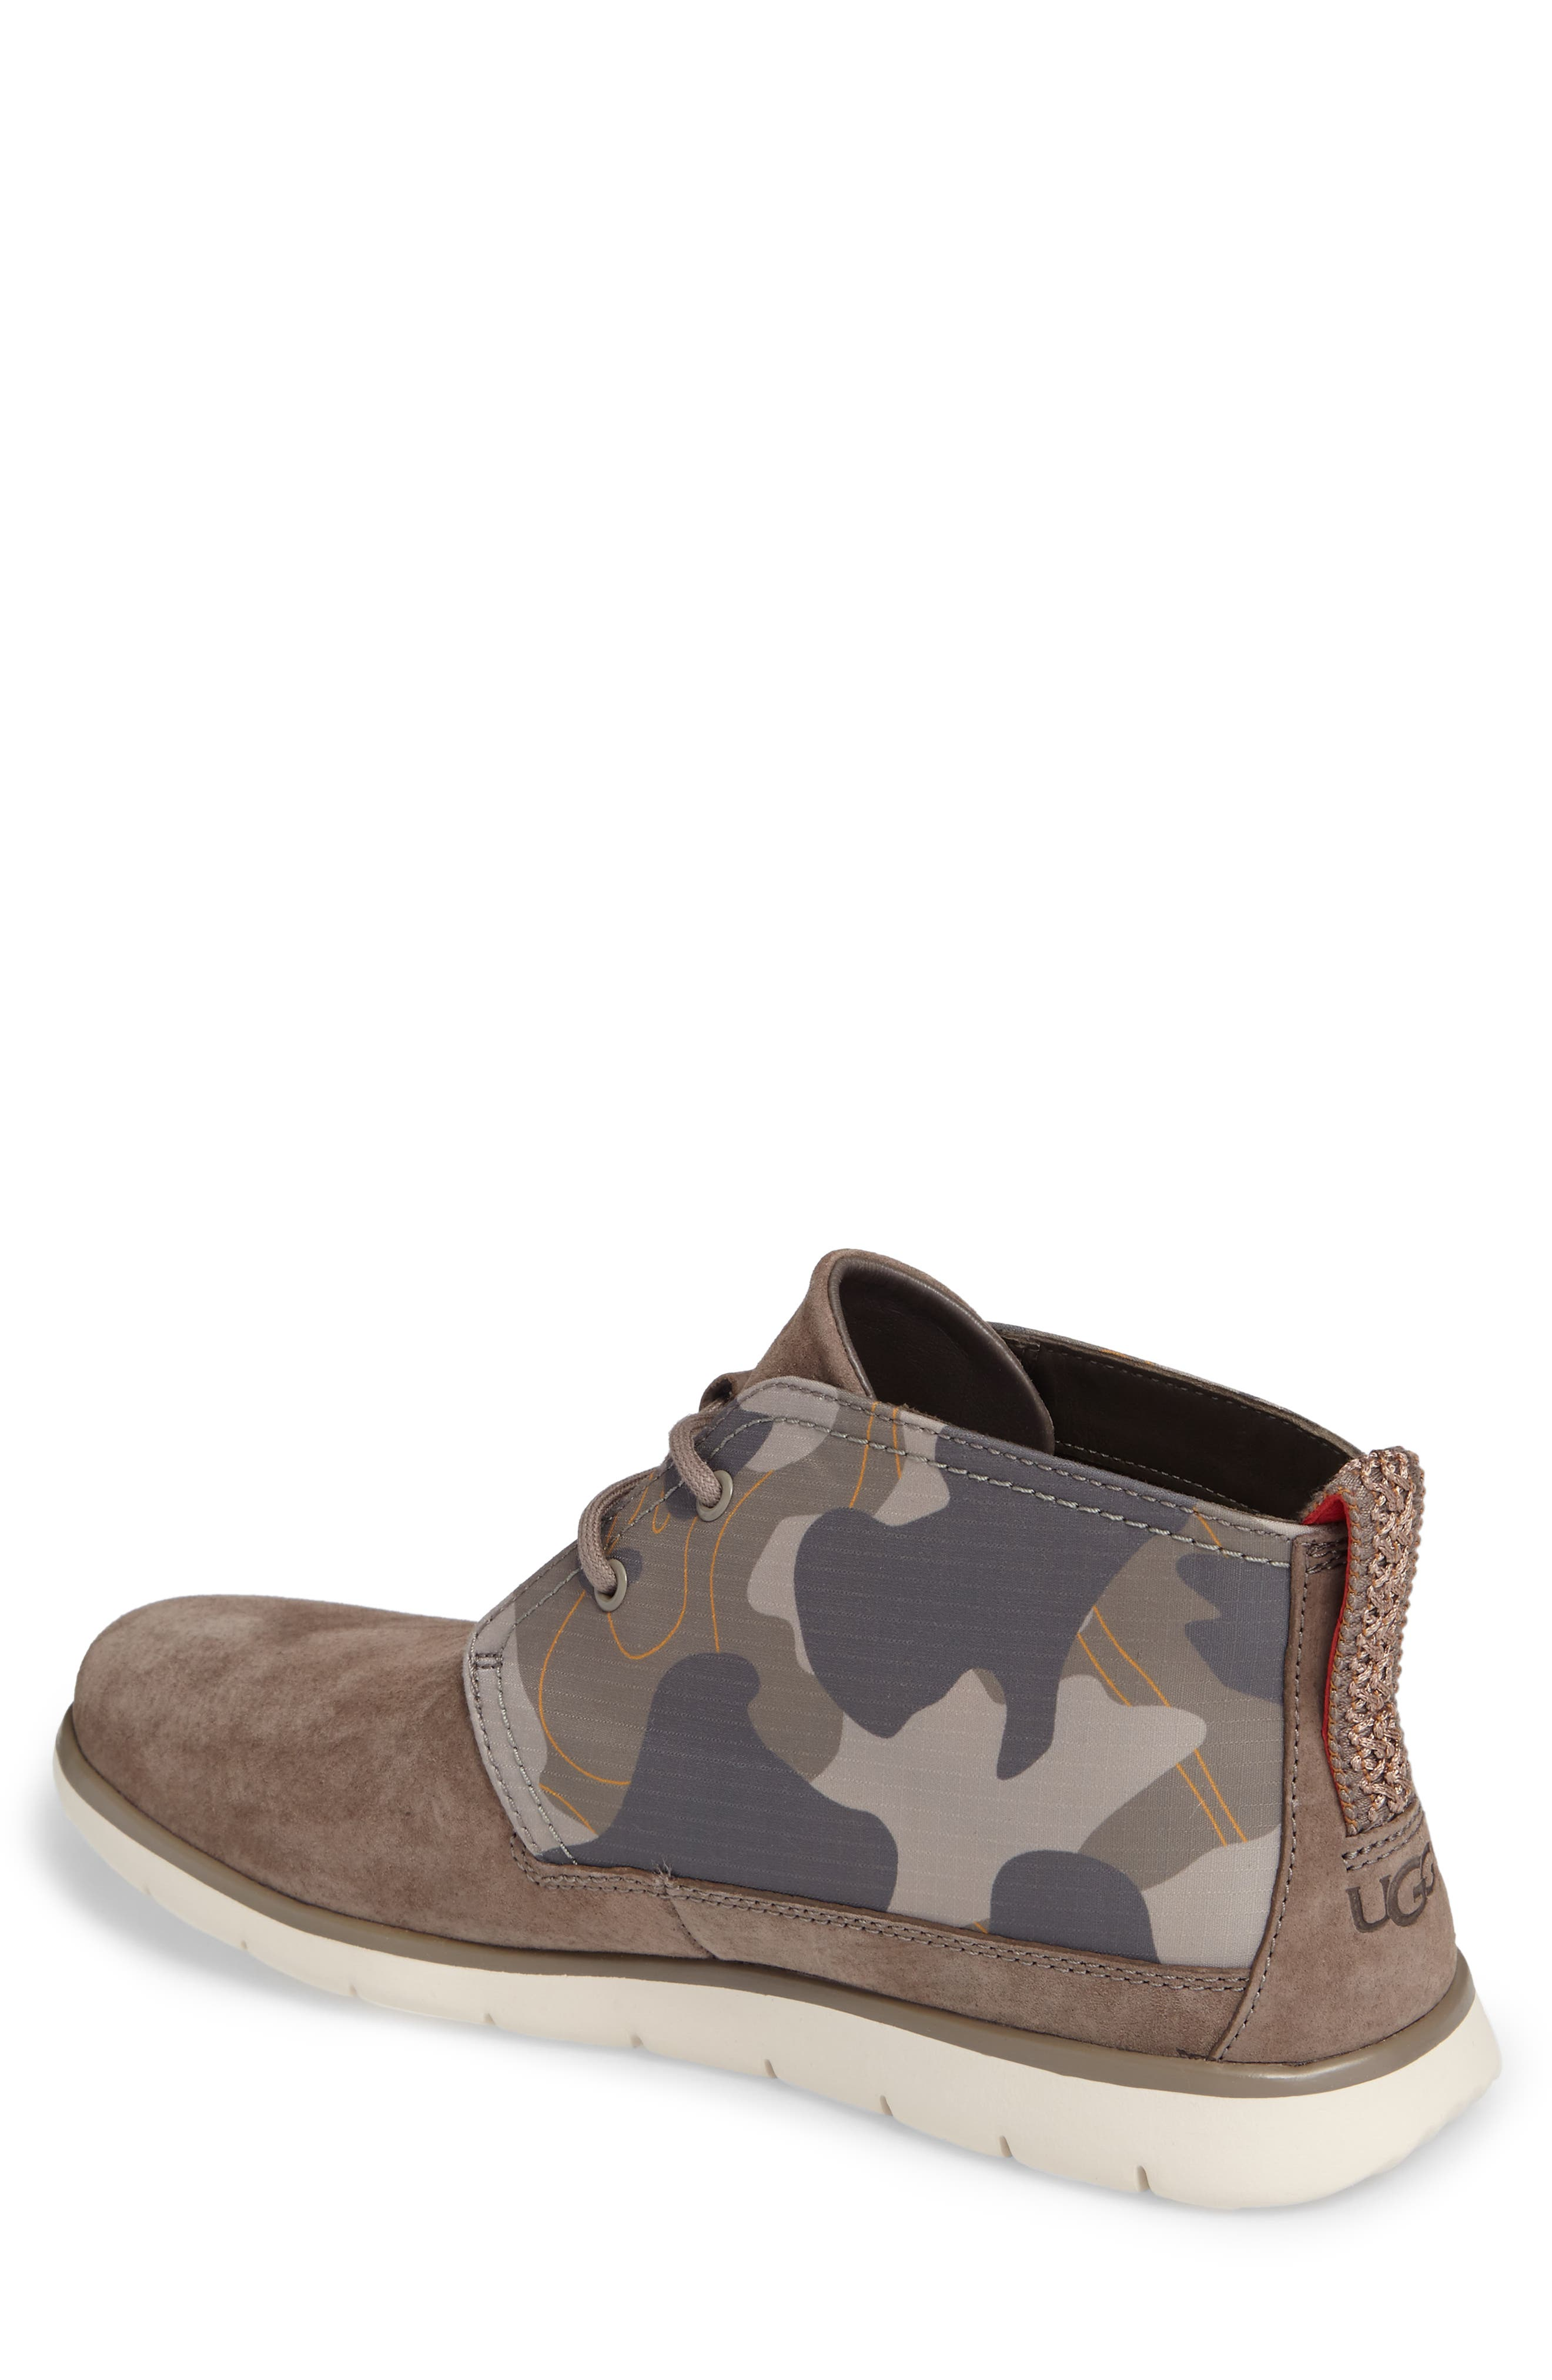 Freamon Chukka Boot,                             Alternate thumbnail 2, color,                             Brindle